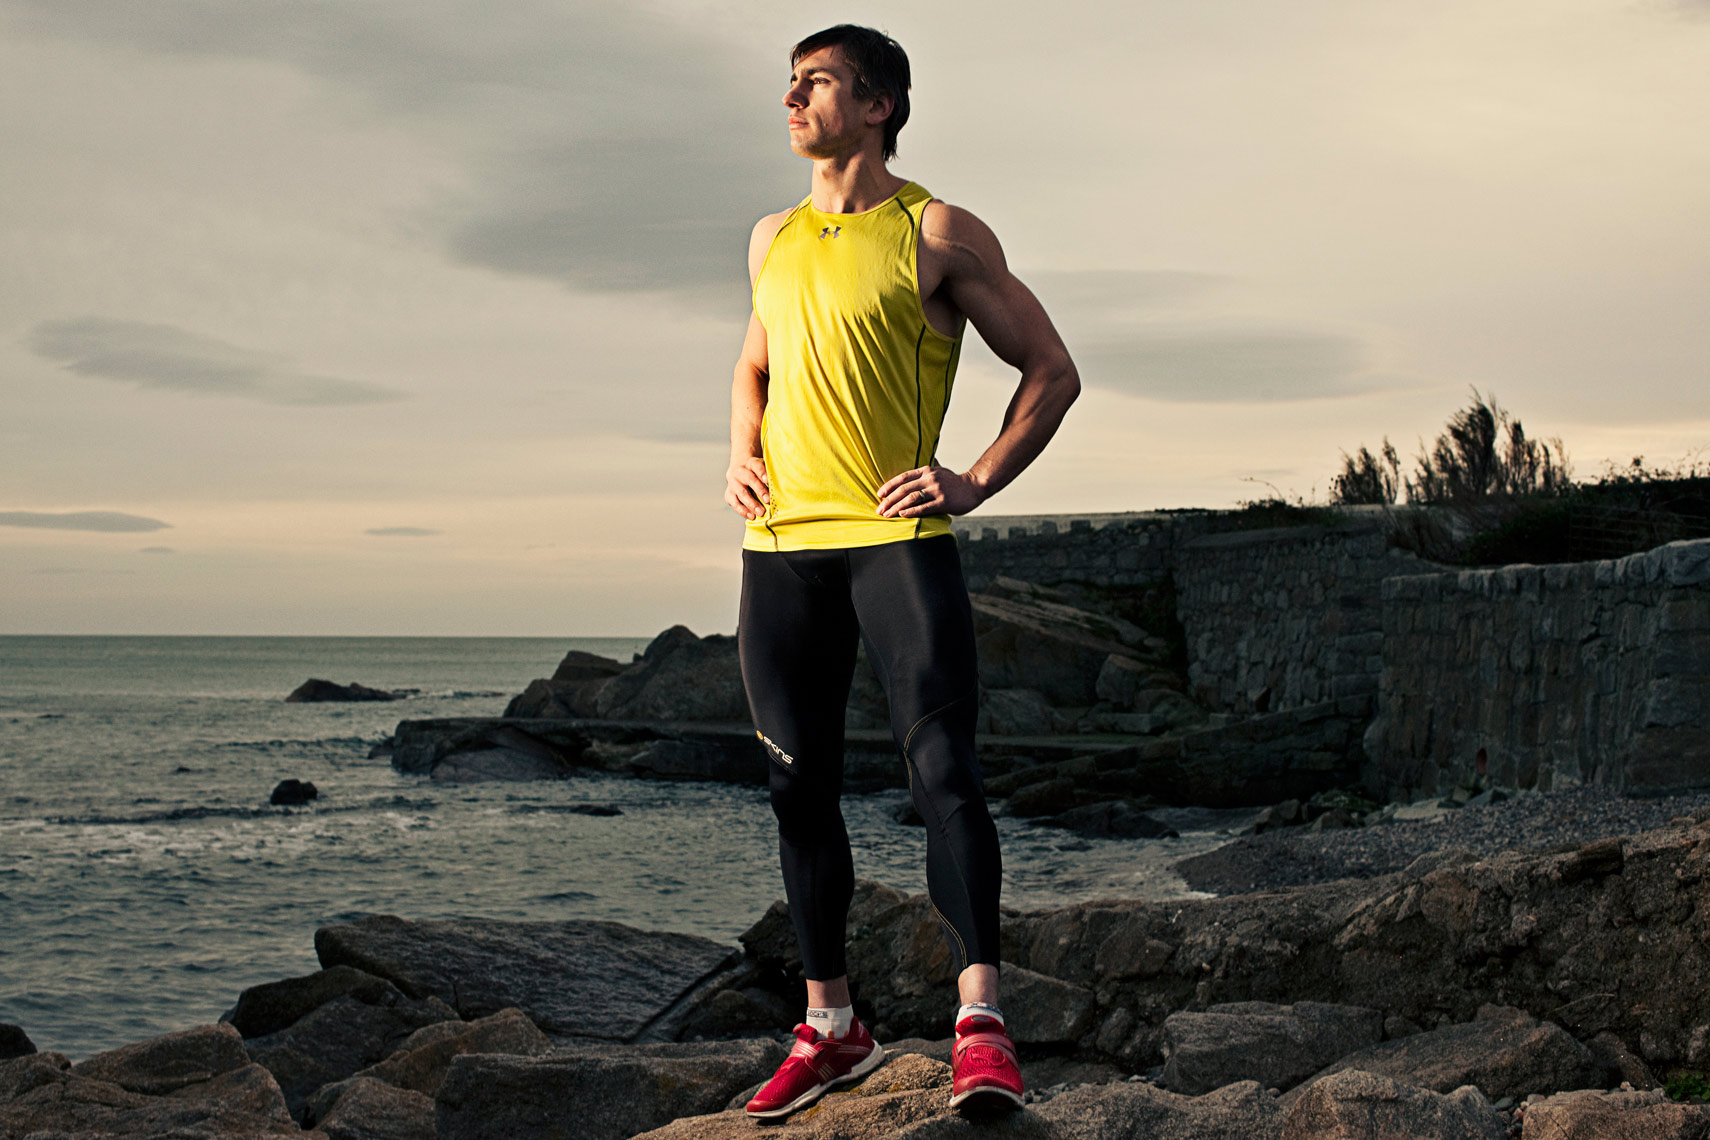 athlete portraits: dramatic portraits of runners